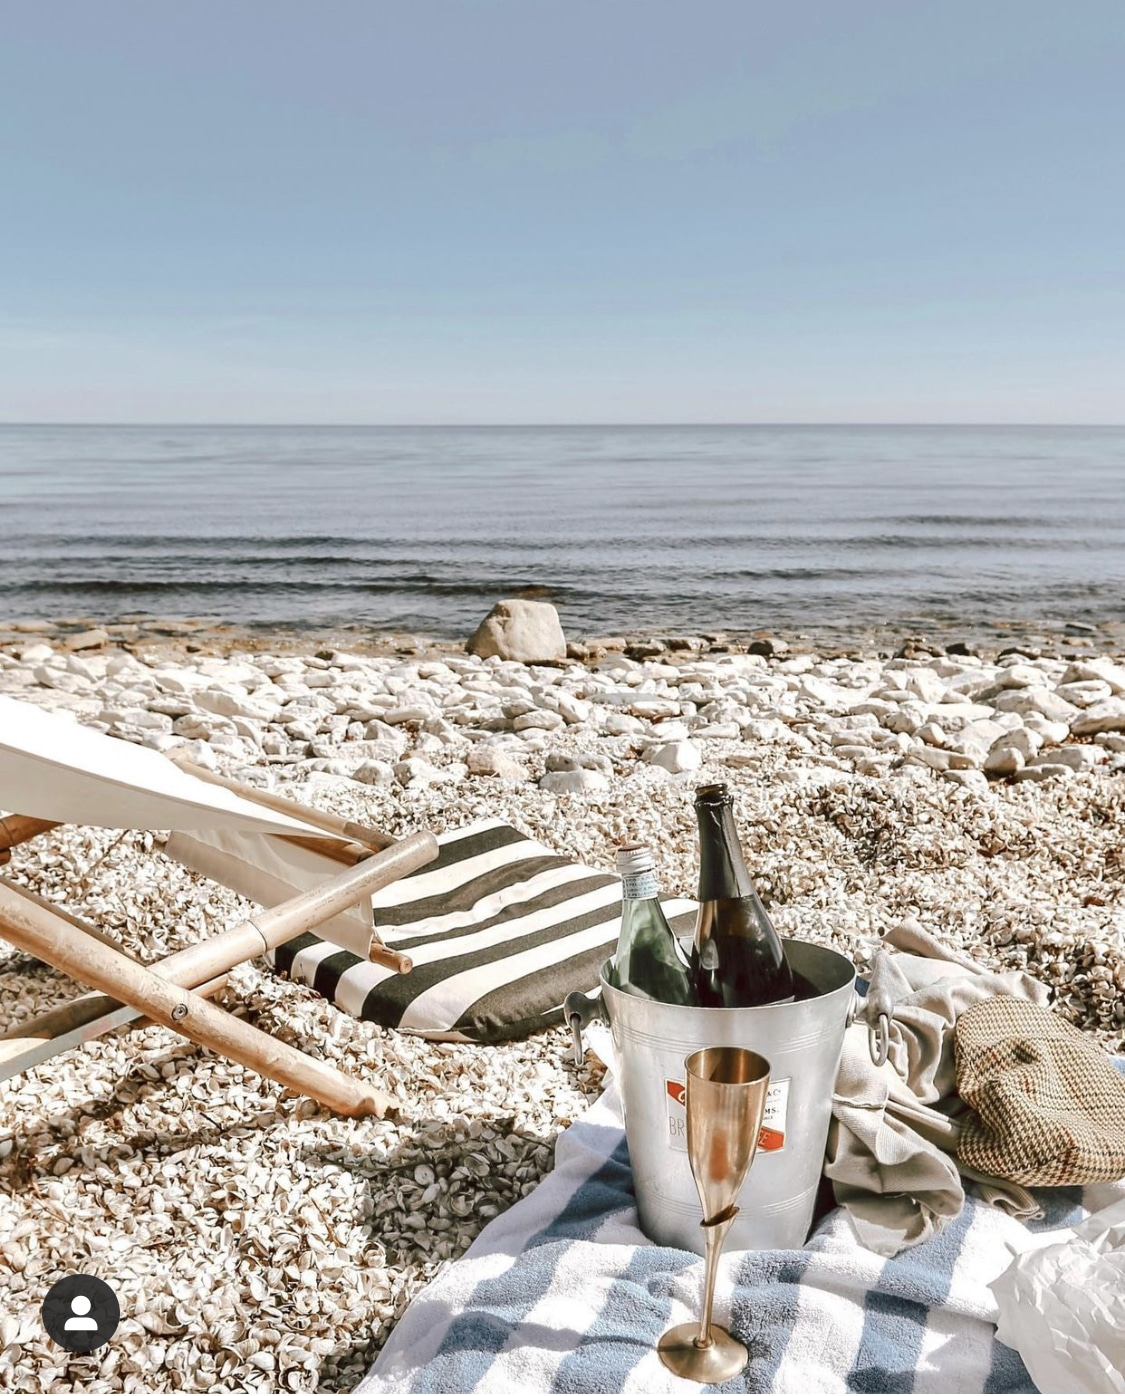 Private beaches, prince edward county